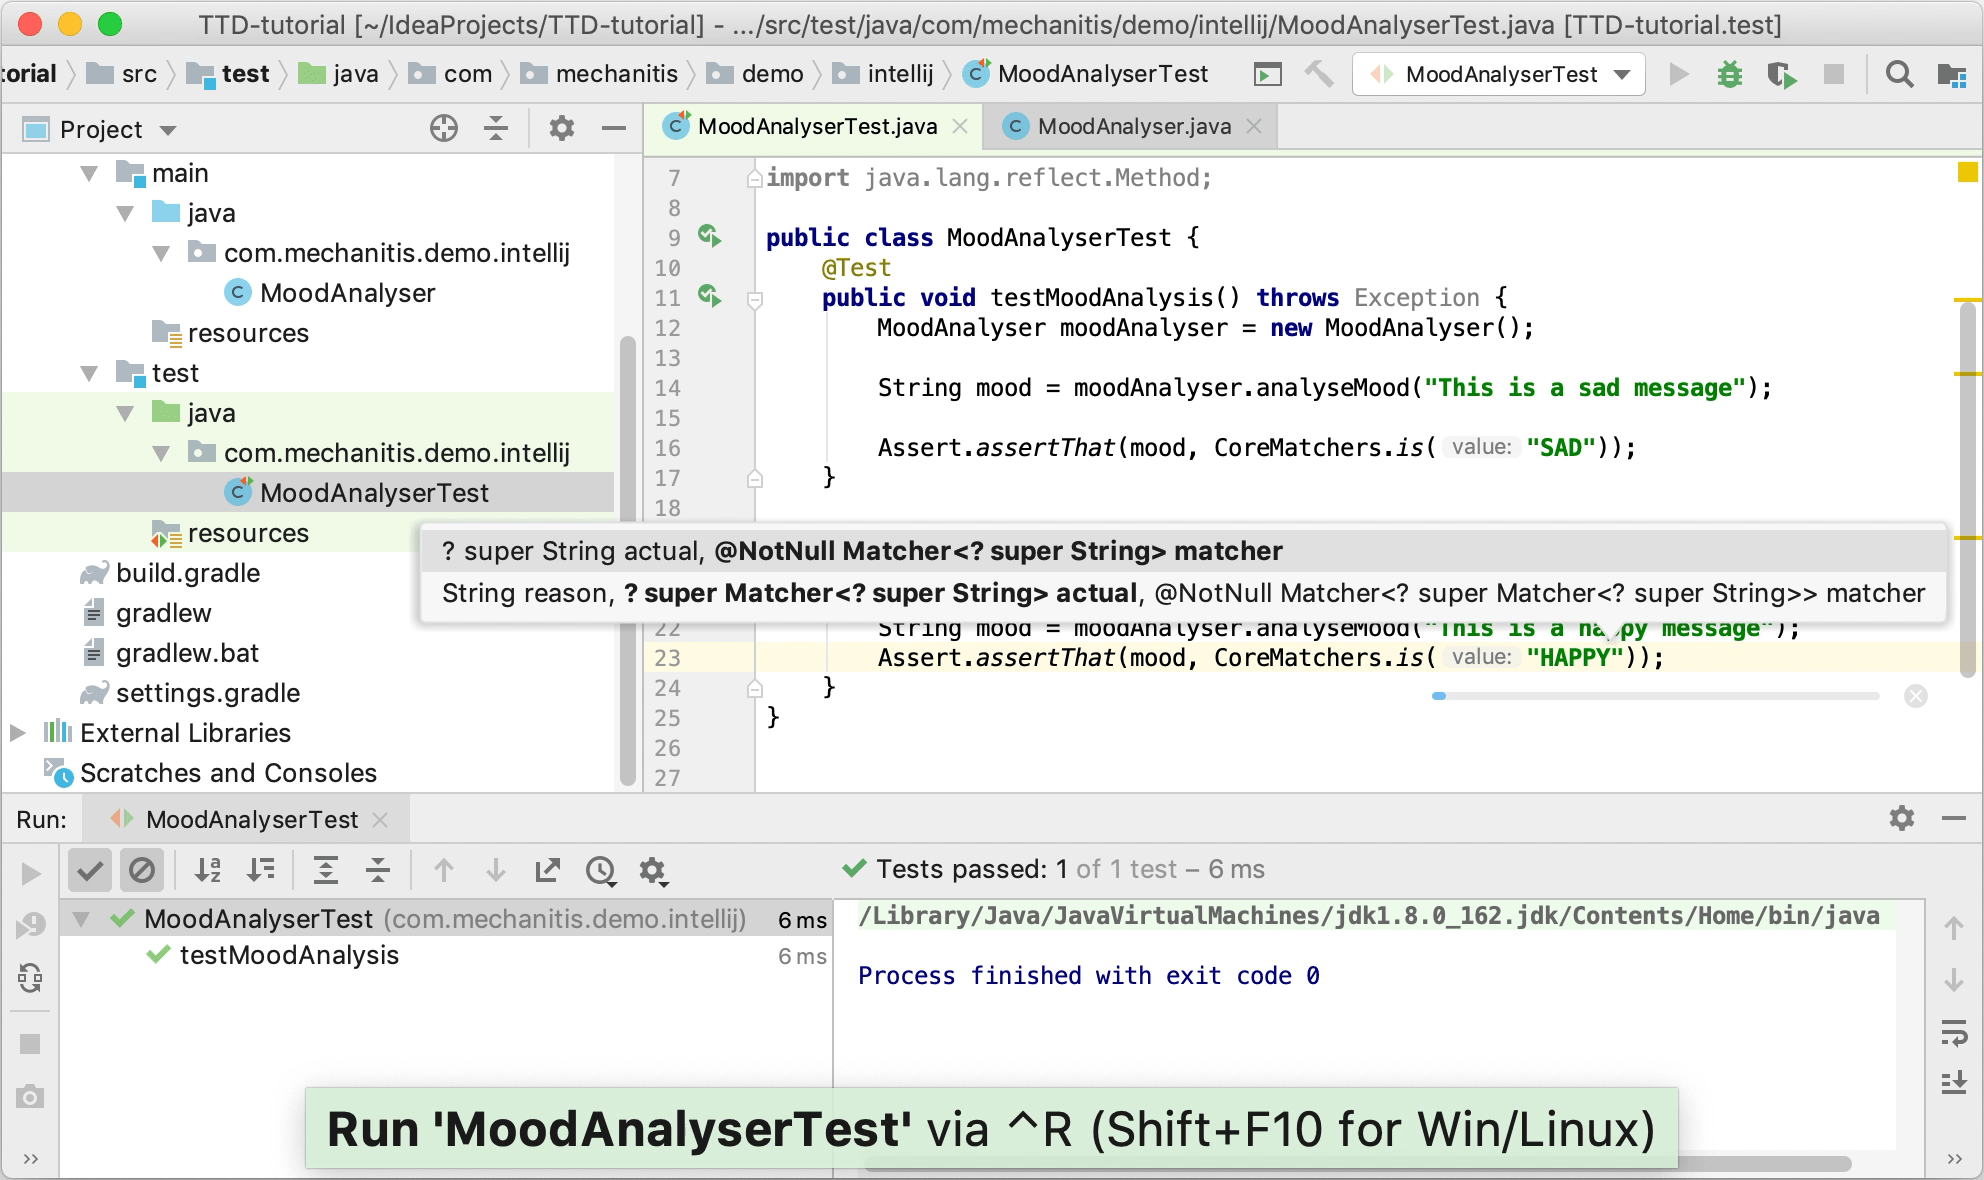 Running the second test case, showing that it fails                 for the correct reason